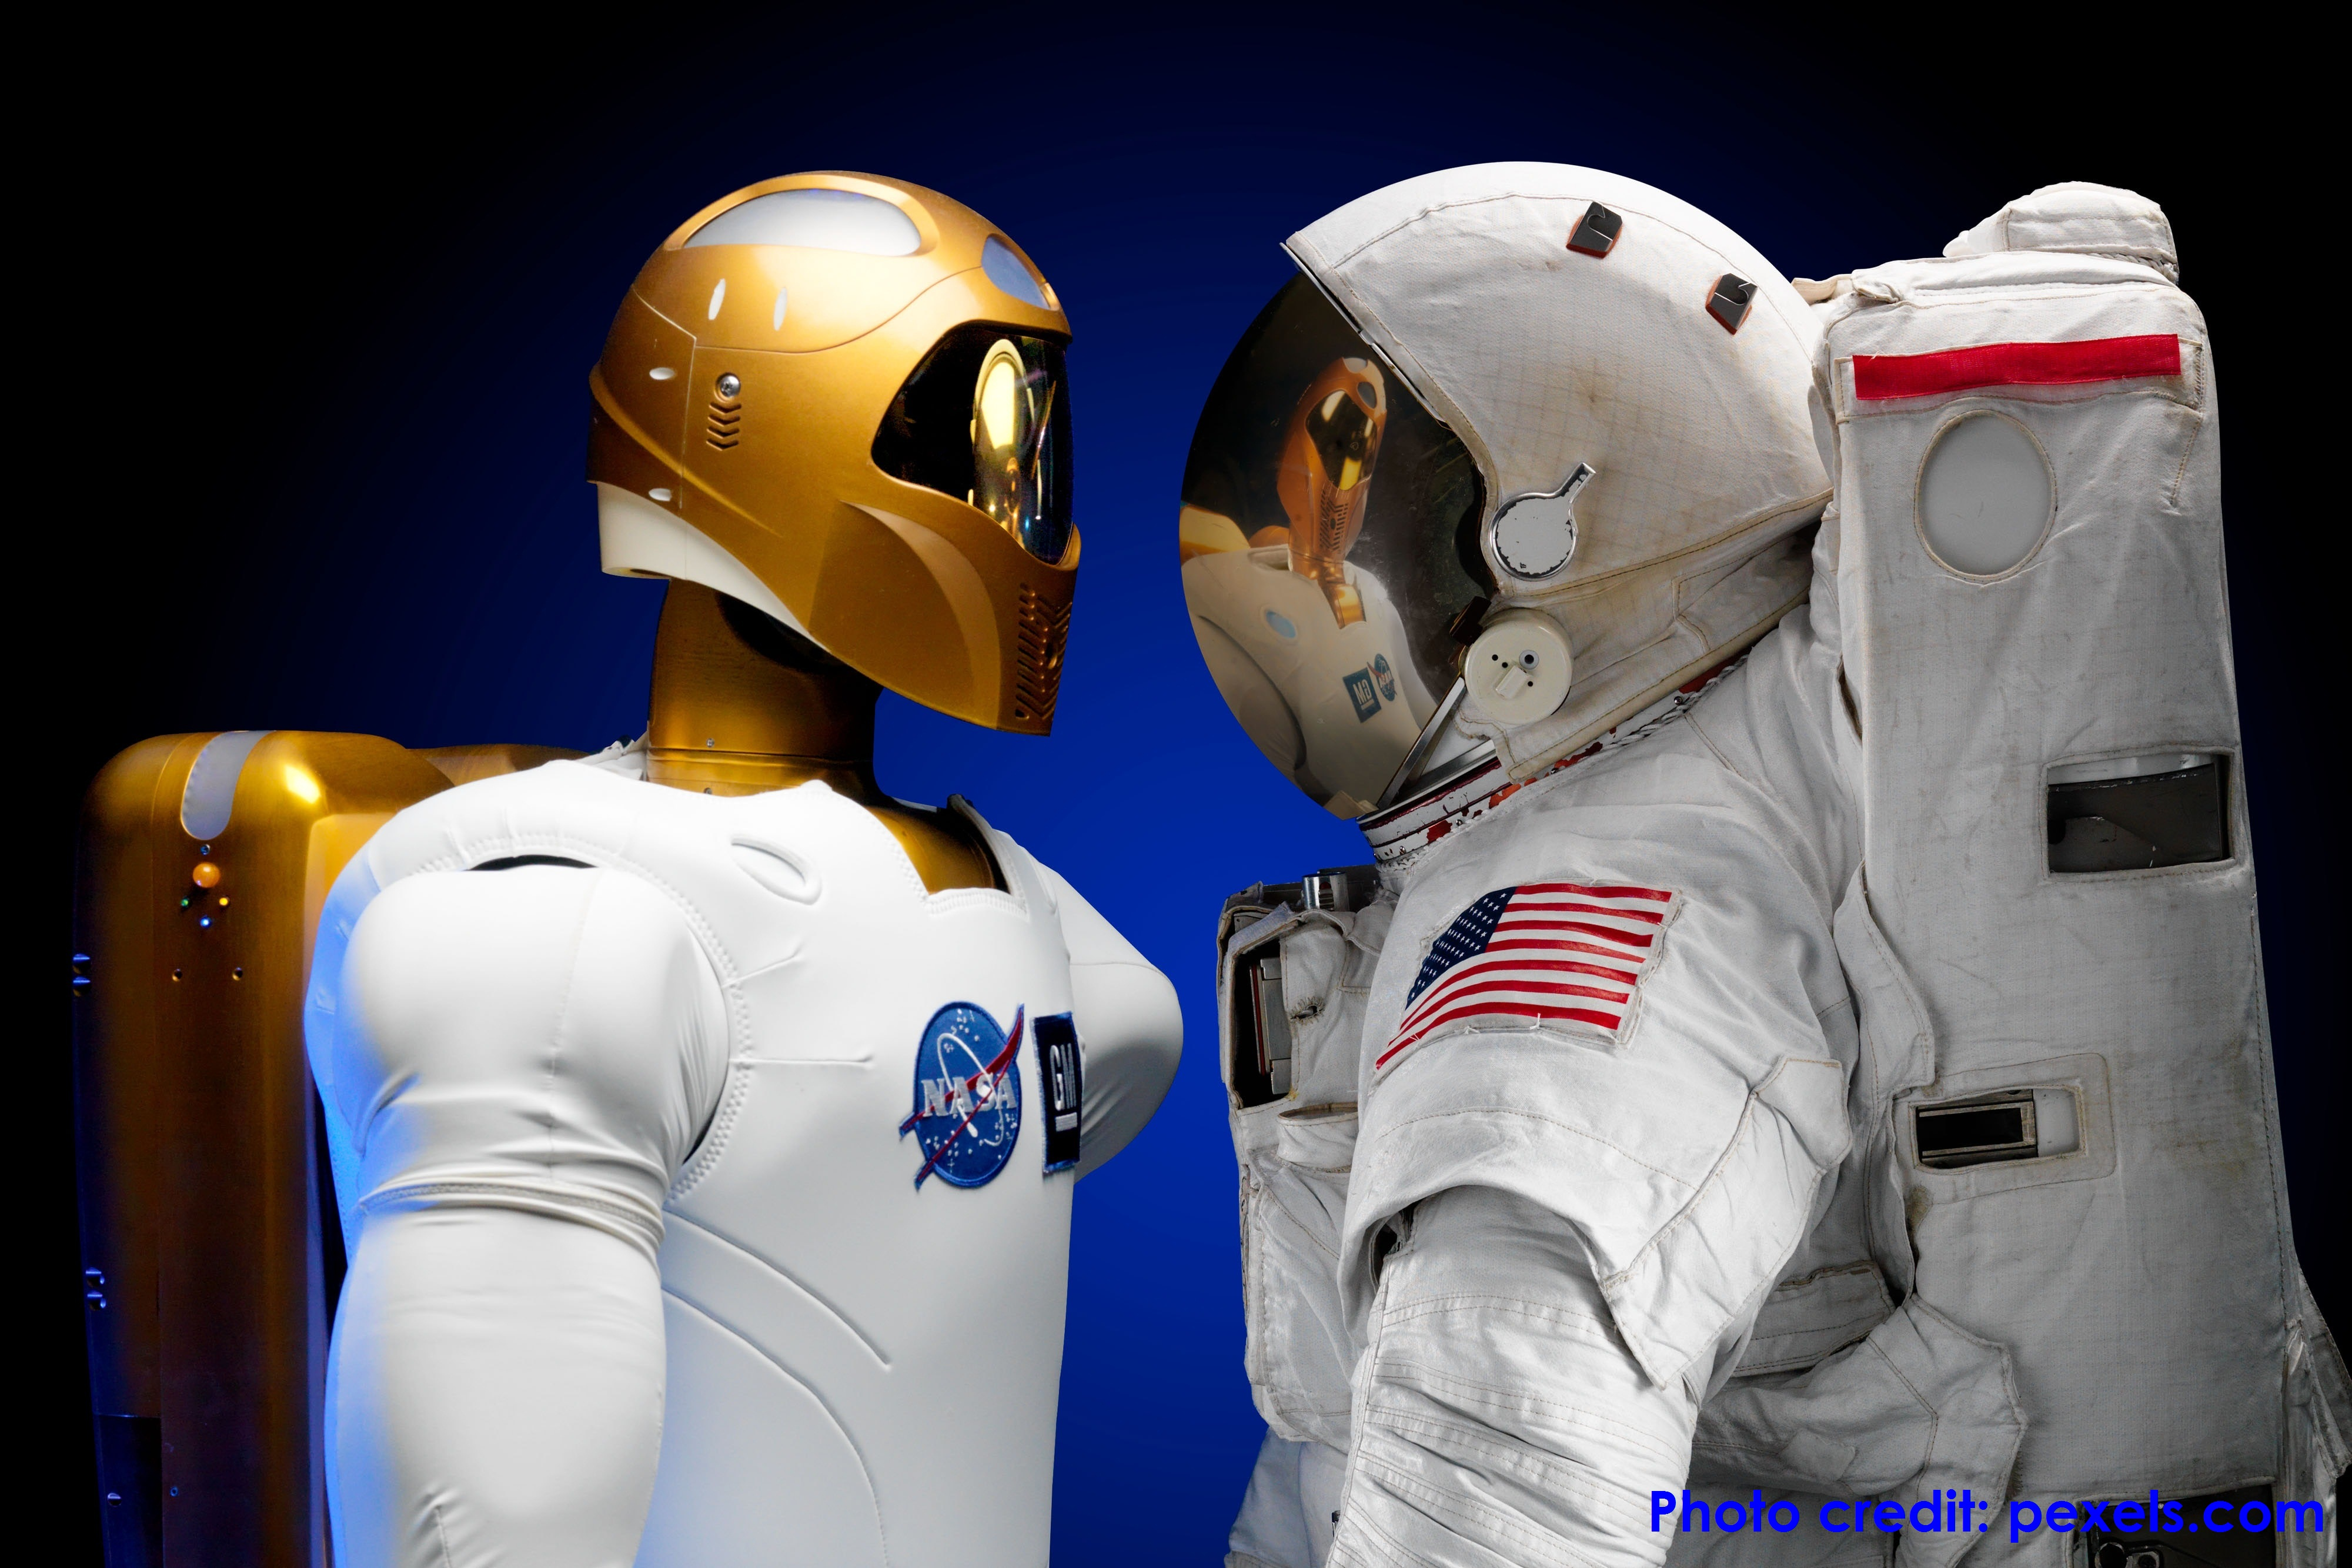 Robot and astronaut standing together